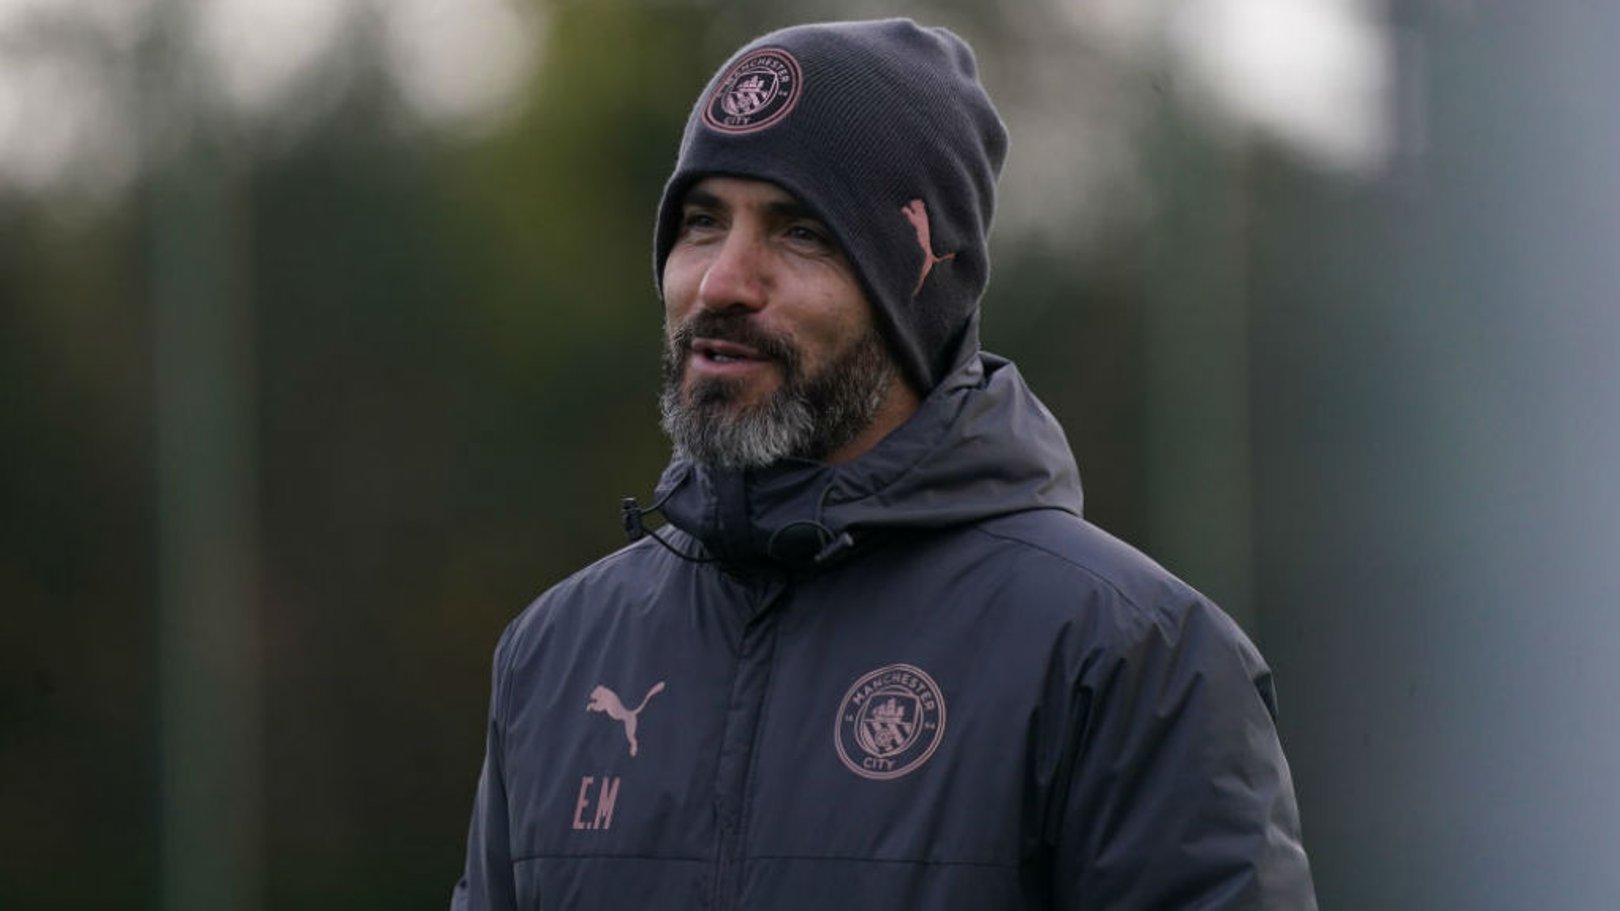 More to come from City's EDS, says Maresca